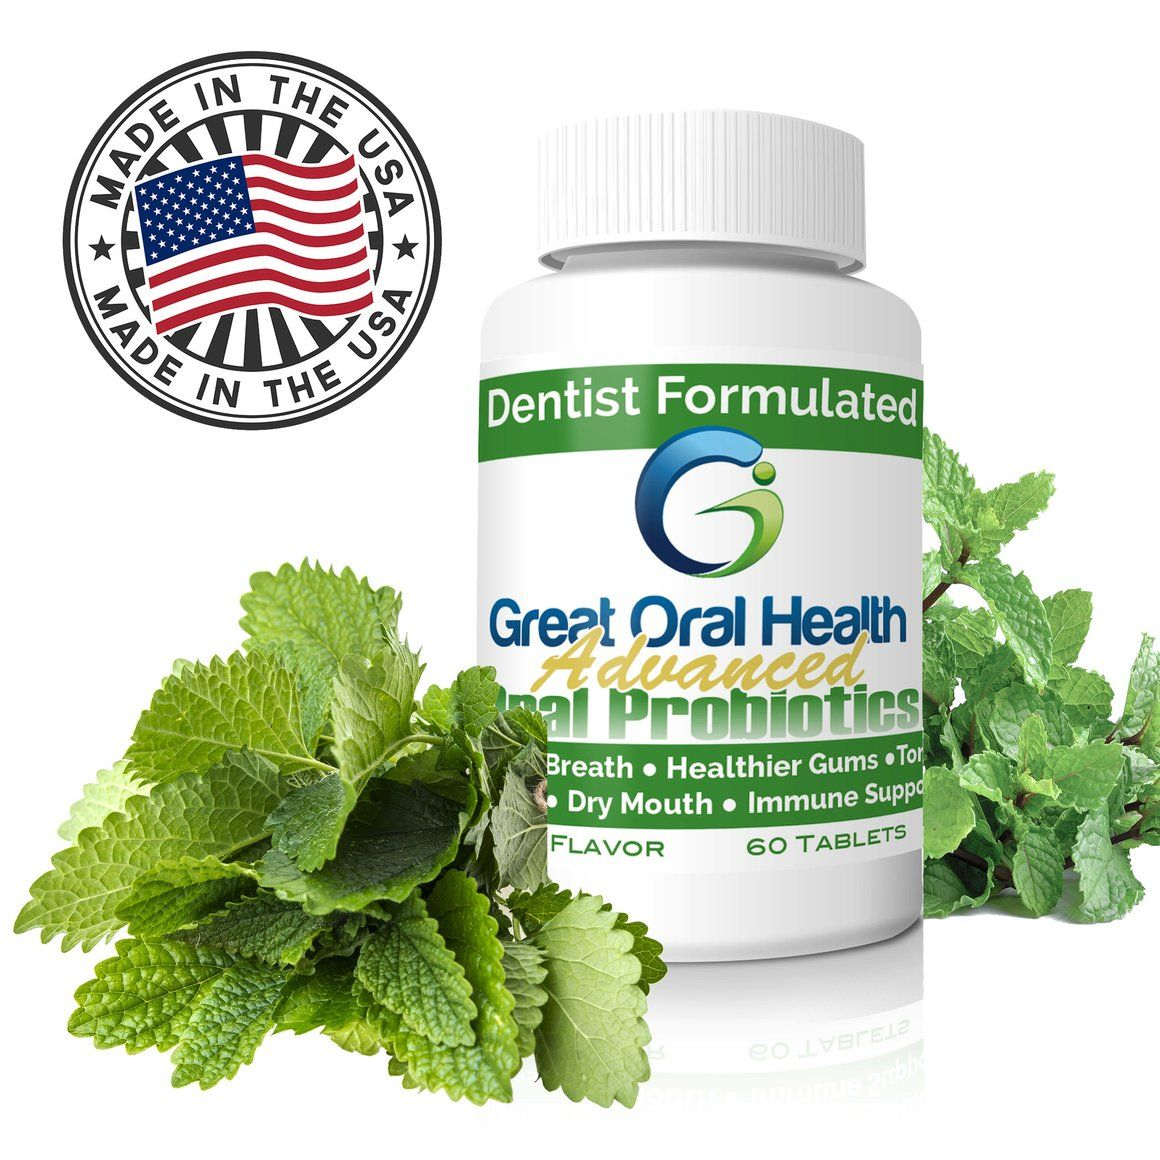 A Powerful and Patented SevenStrain Formulation of Oral